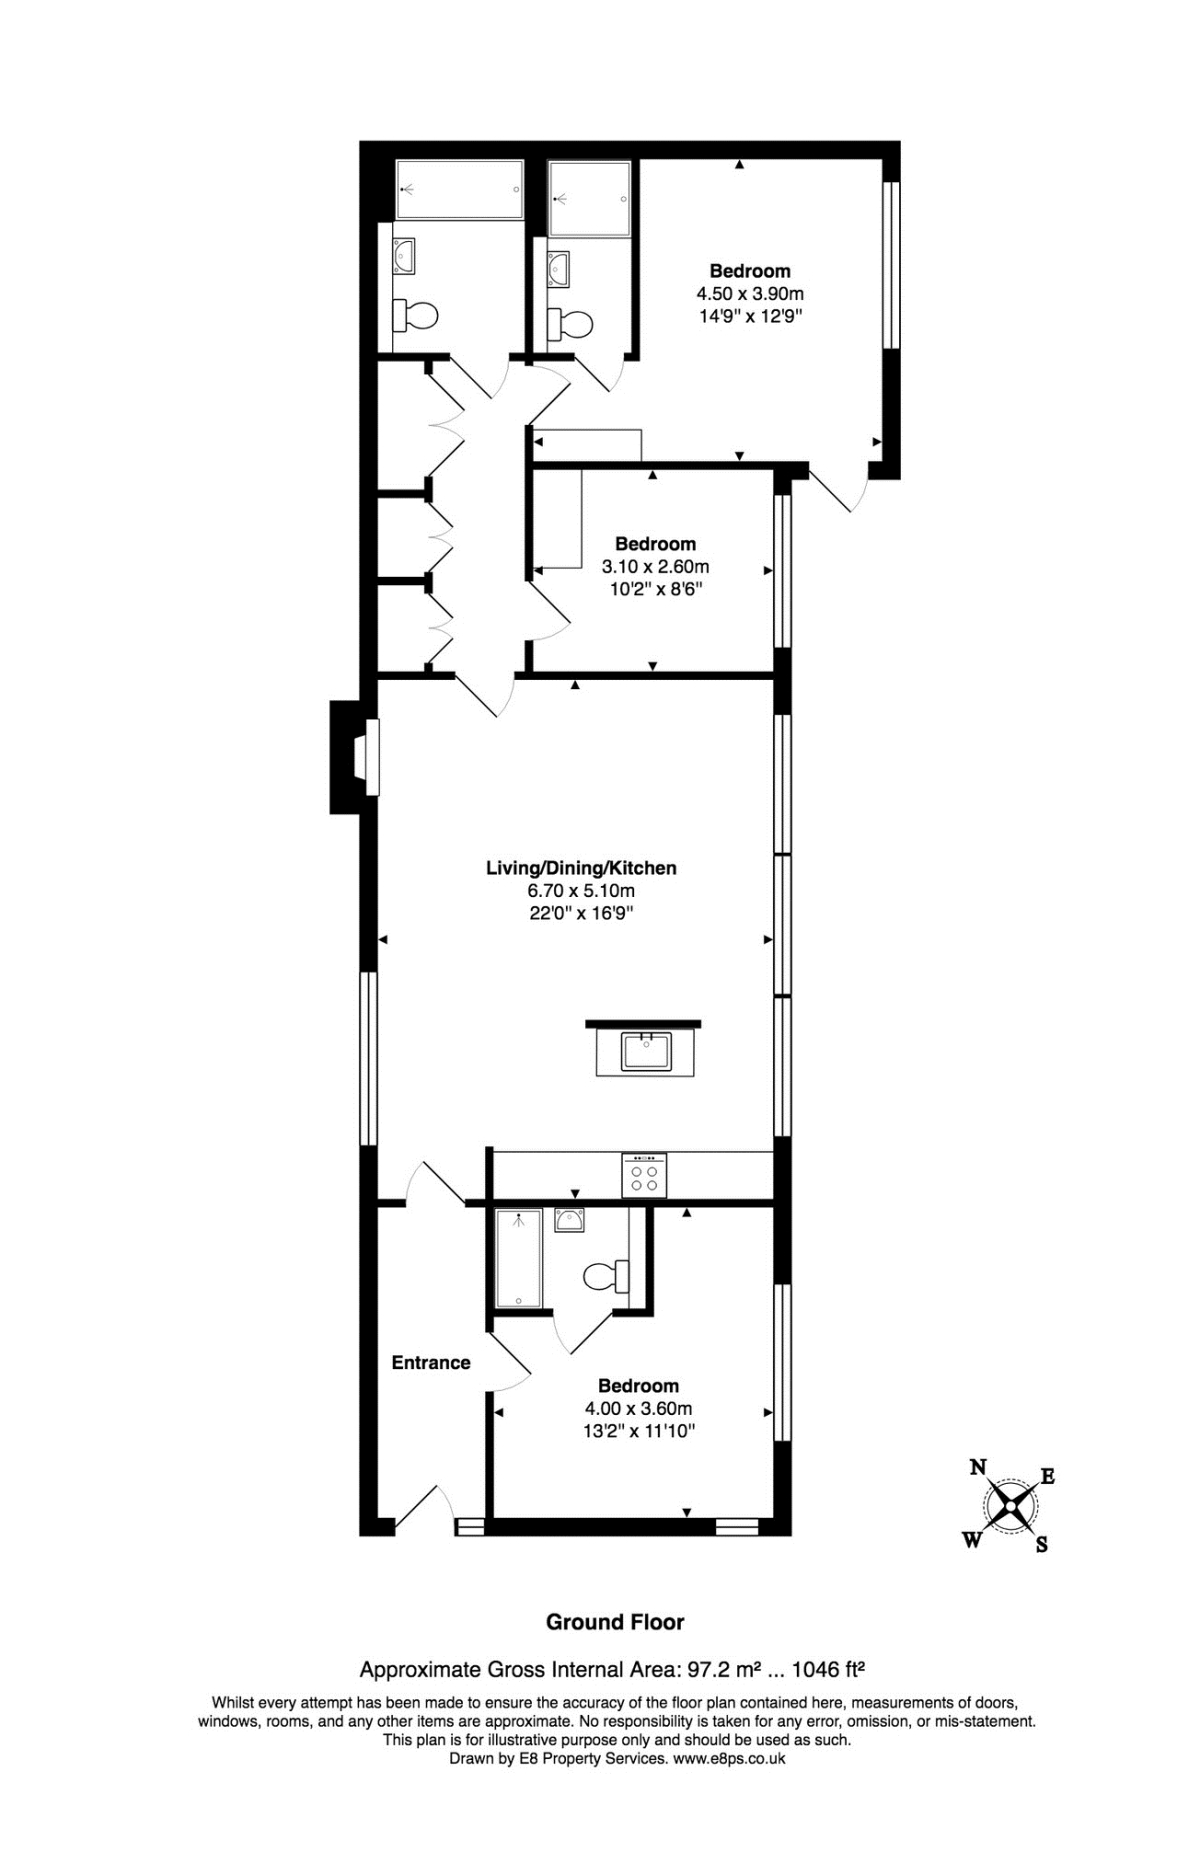 Floor plan · energy performance certificate